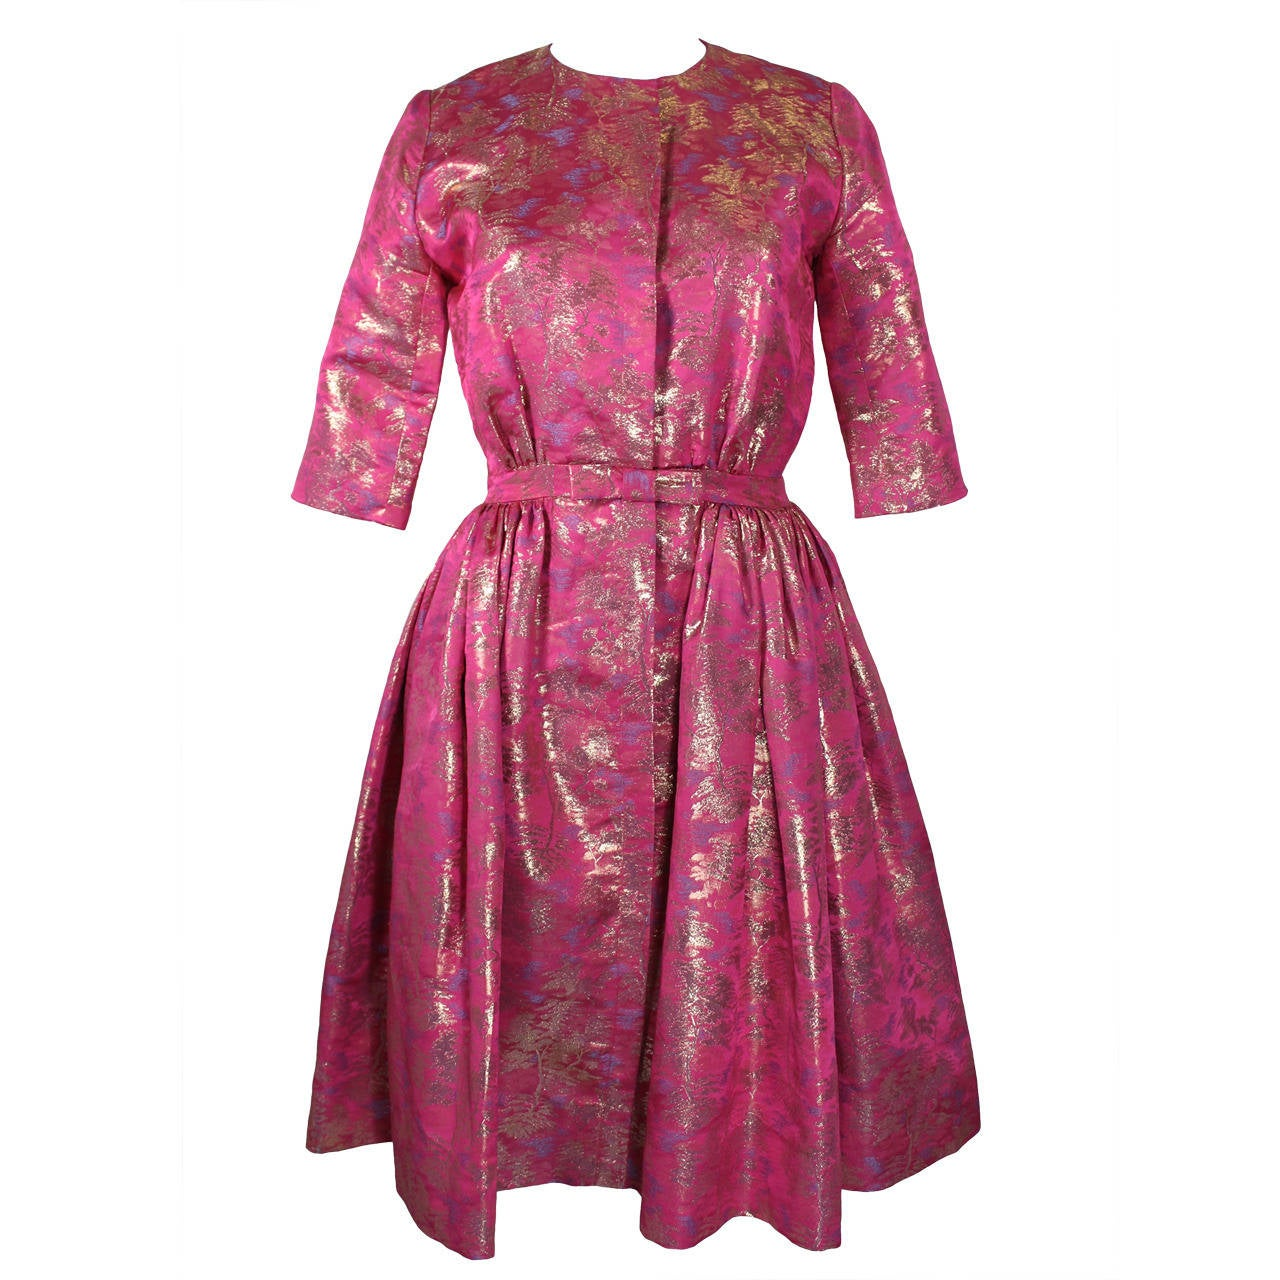 Larry Aldrich Hot Pink and Gold Tree Motif Brocade Dress 1